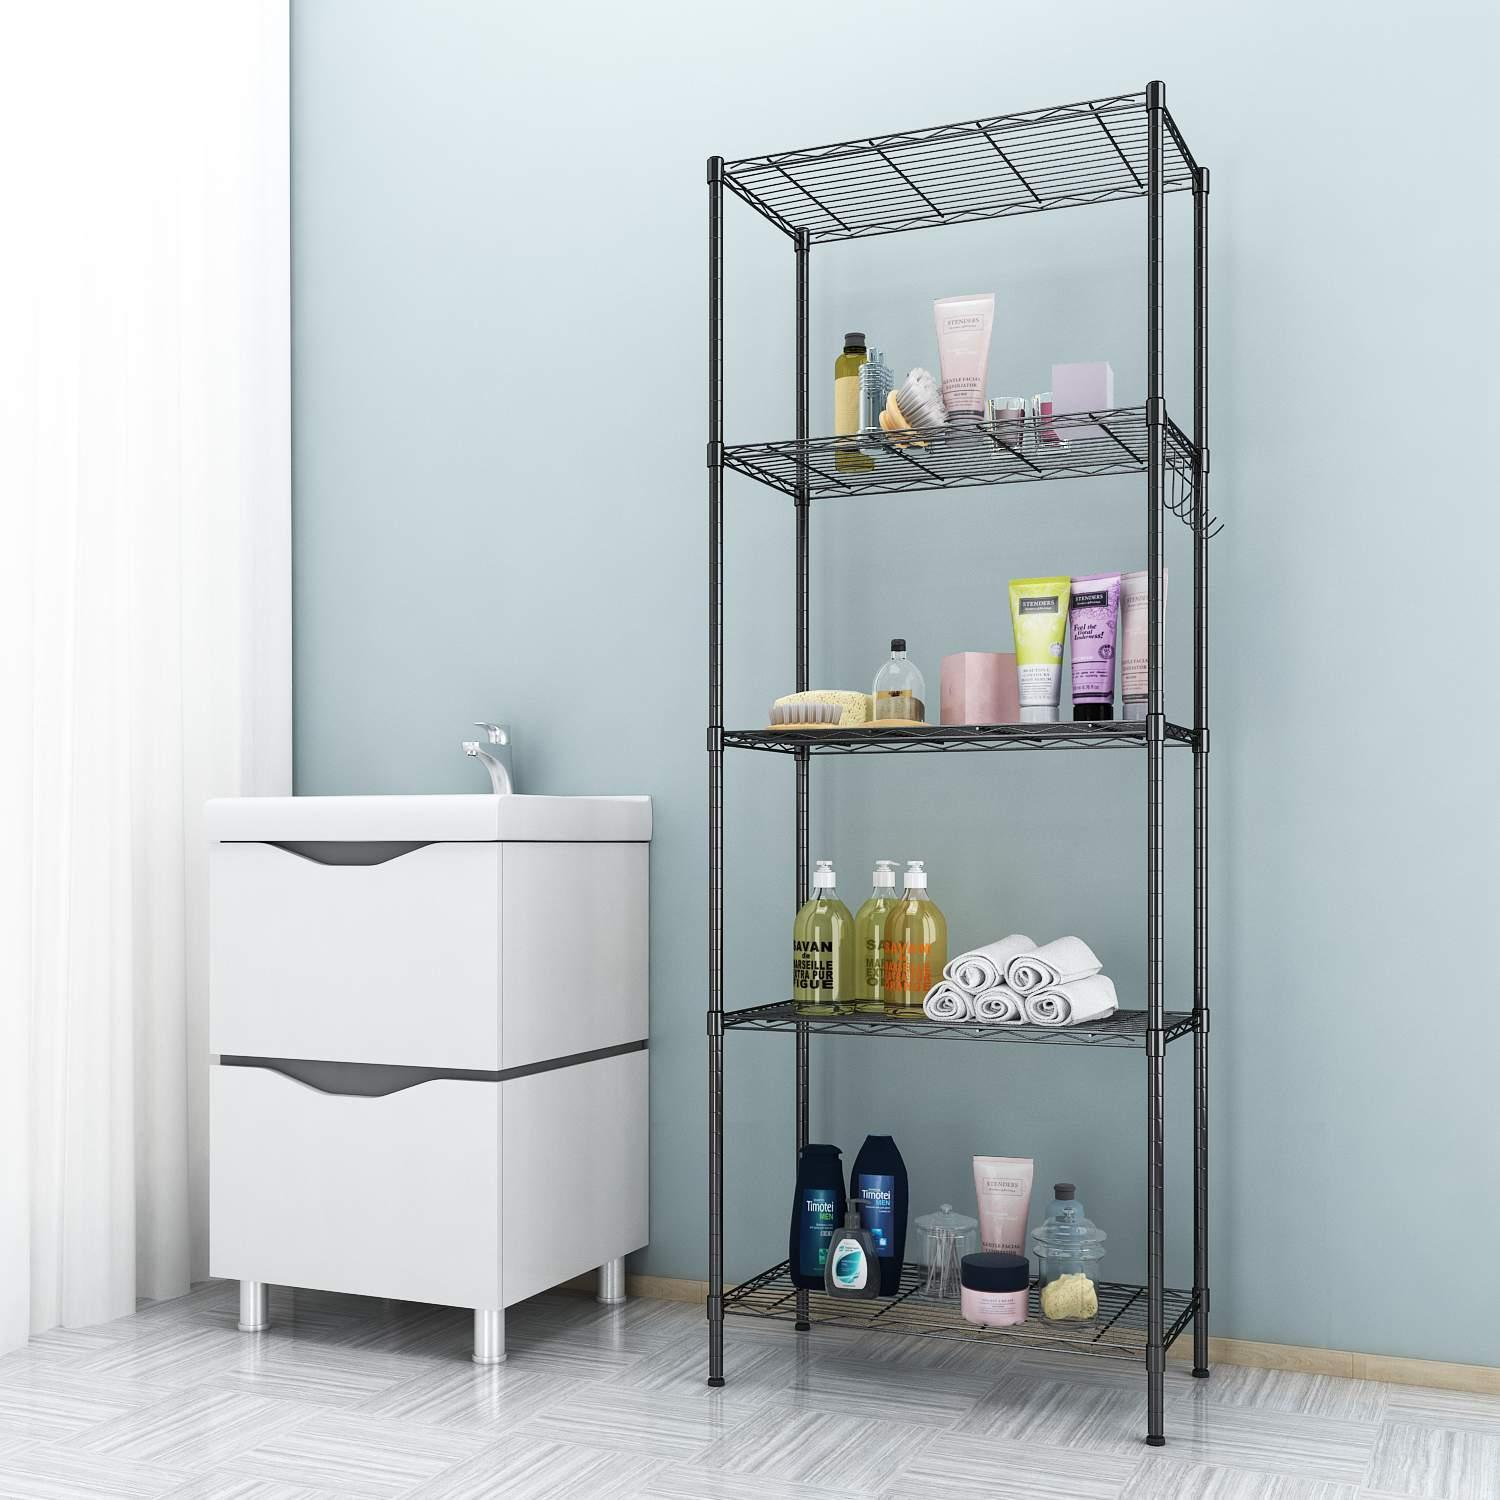 5-Tier Wire Shelving Storage Organizer Rack Adjustable Height with Side Hooks 1